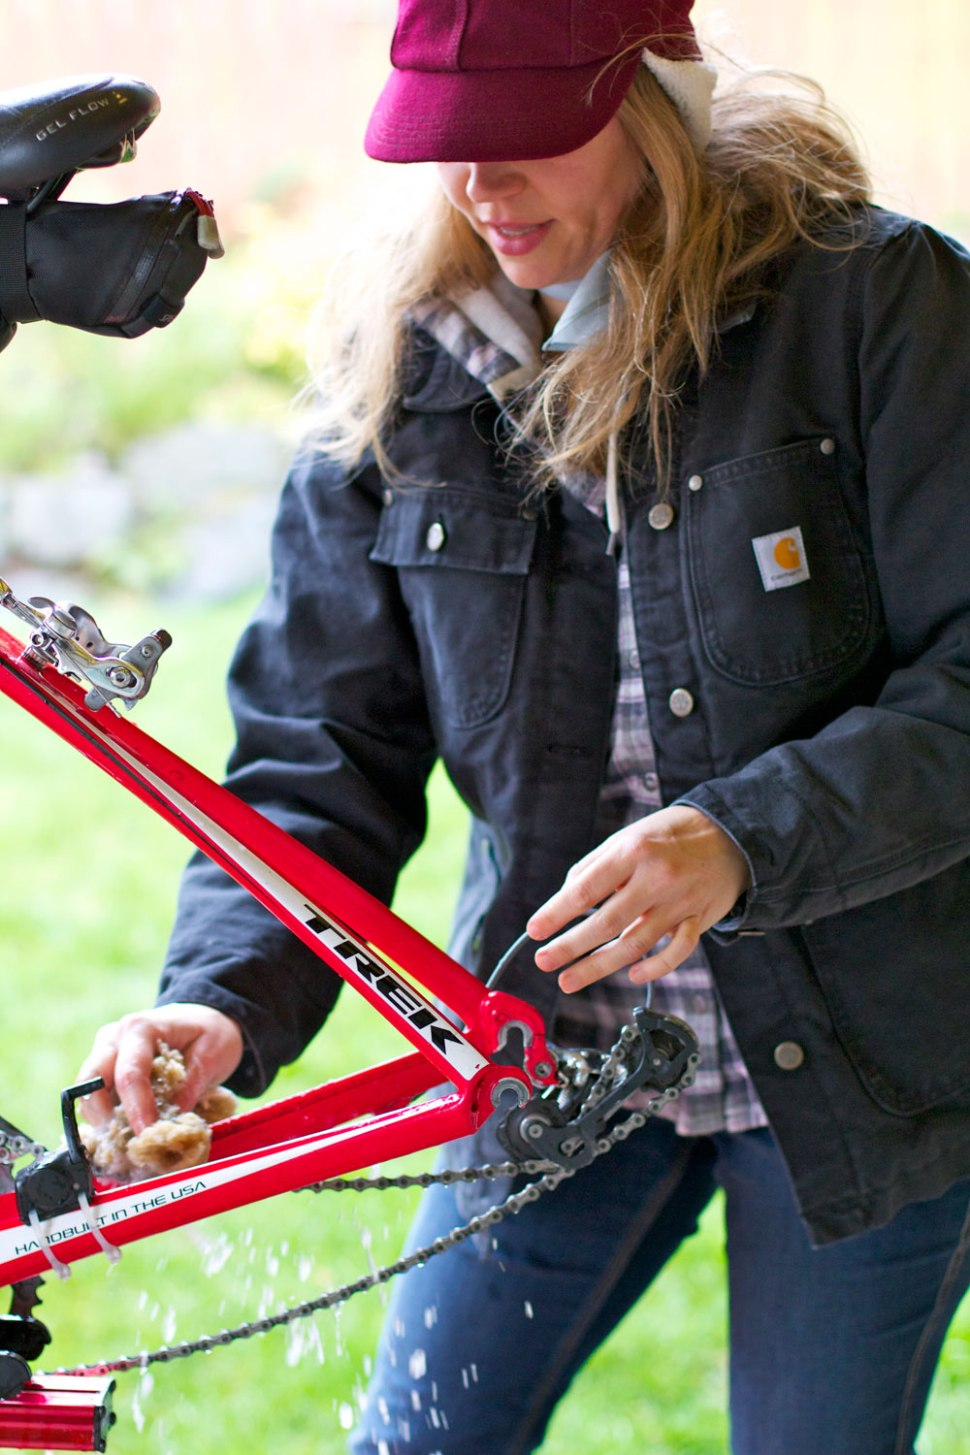 Crafted in Carhartt -- bike maintenance